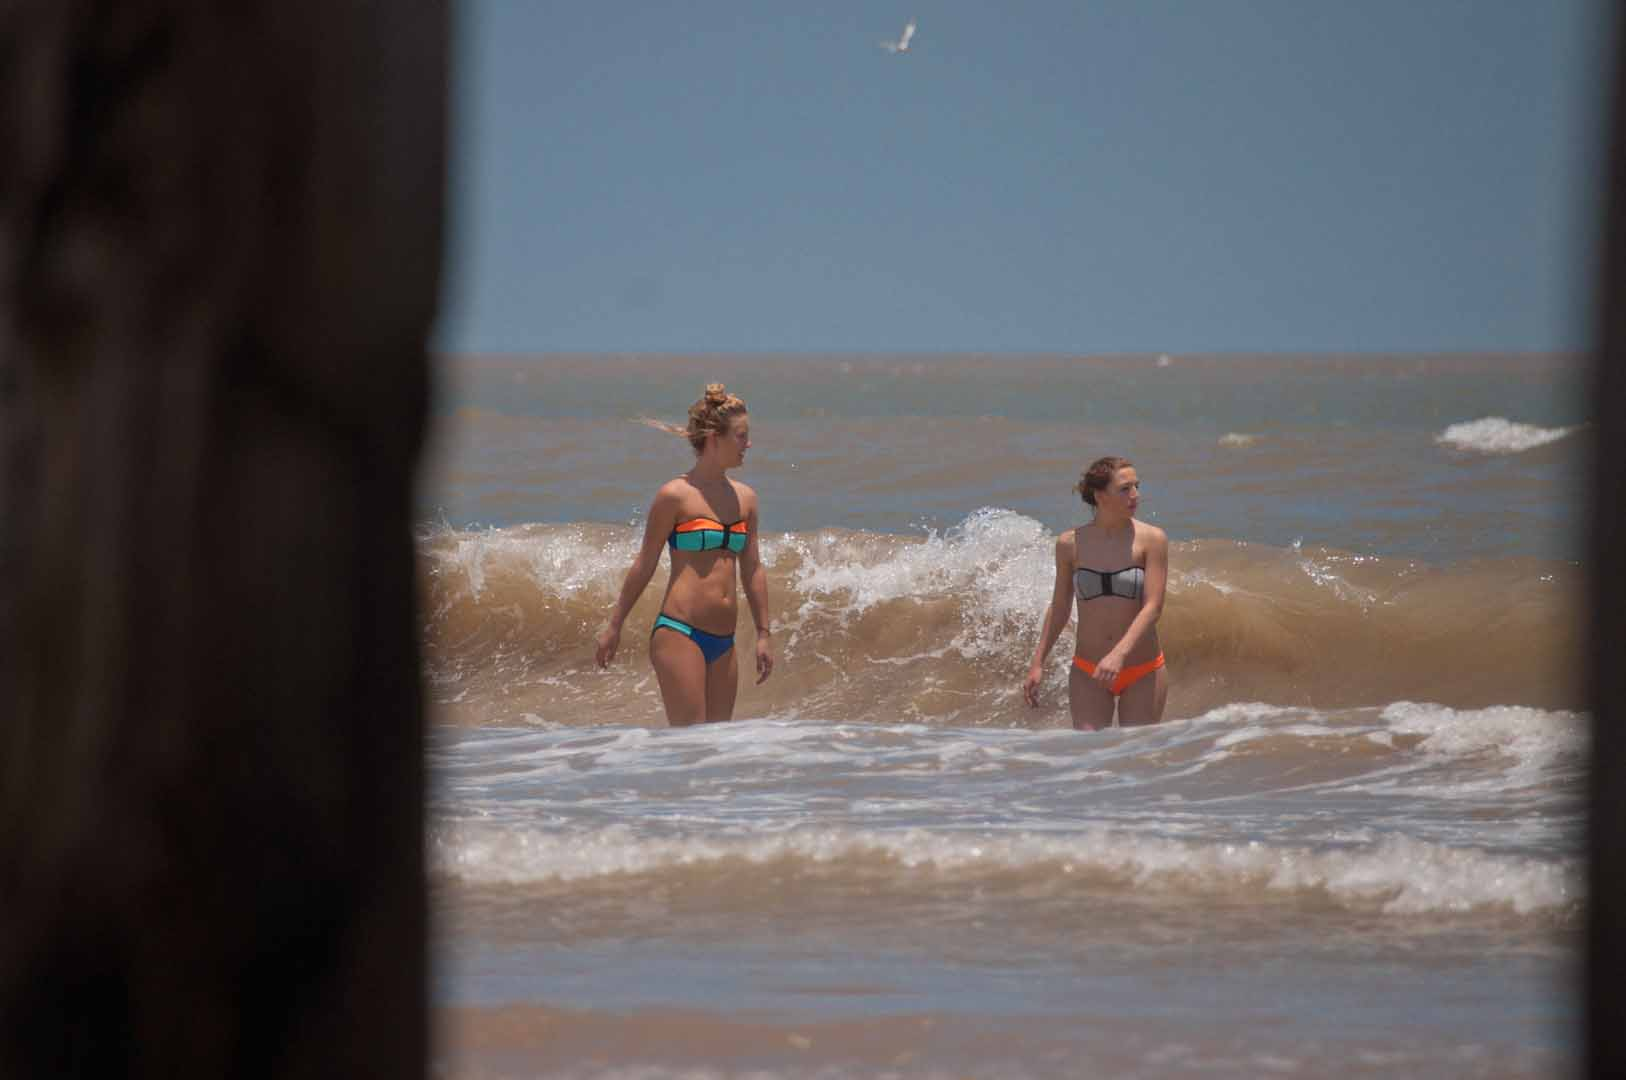 SurfsideLateJune_20150627_400